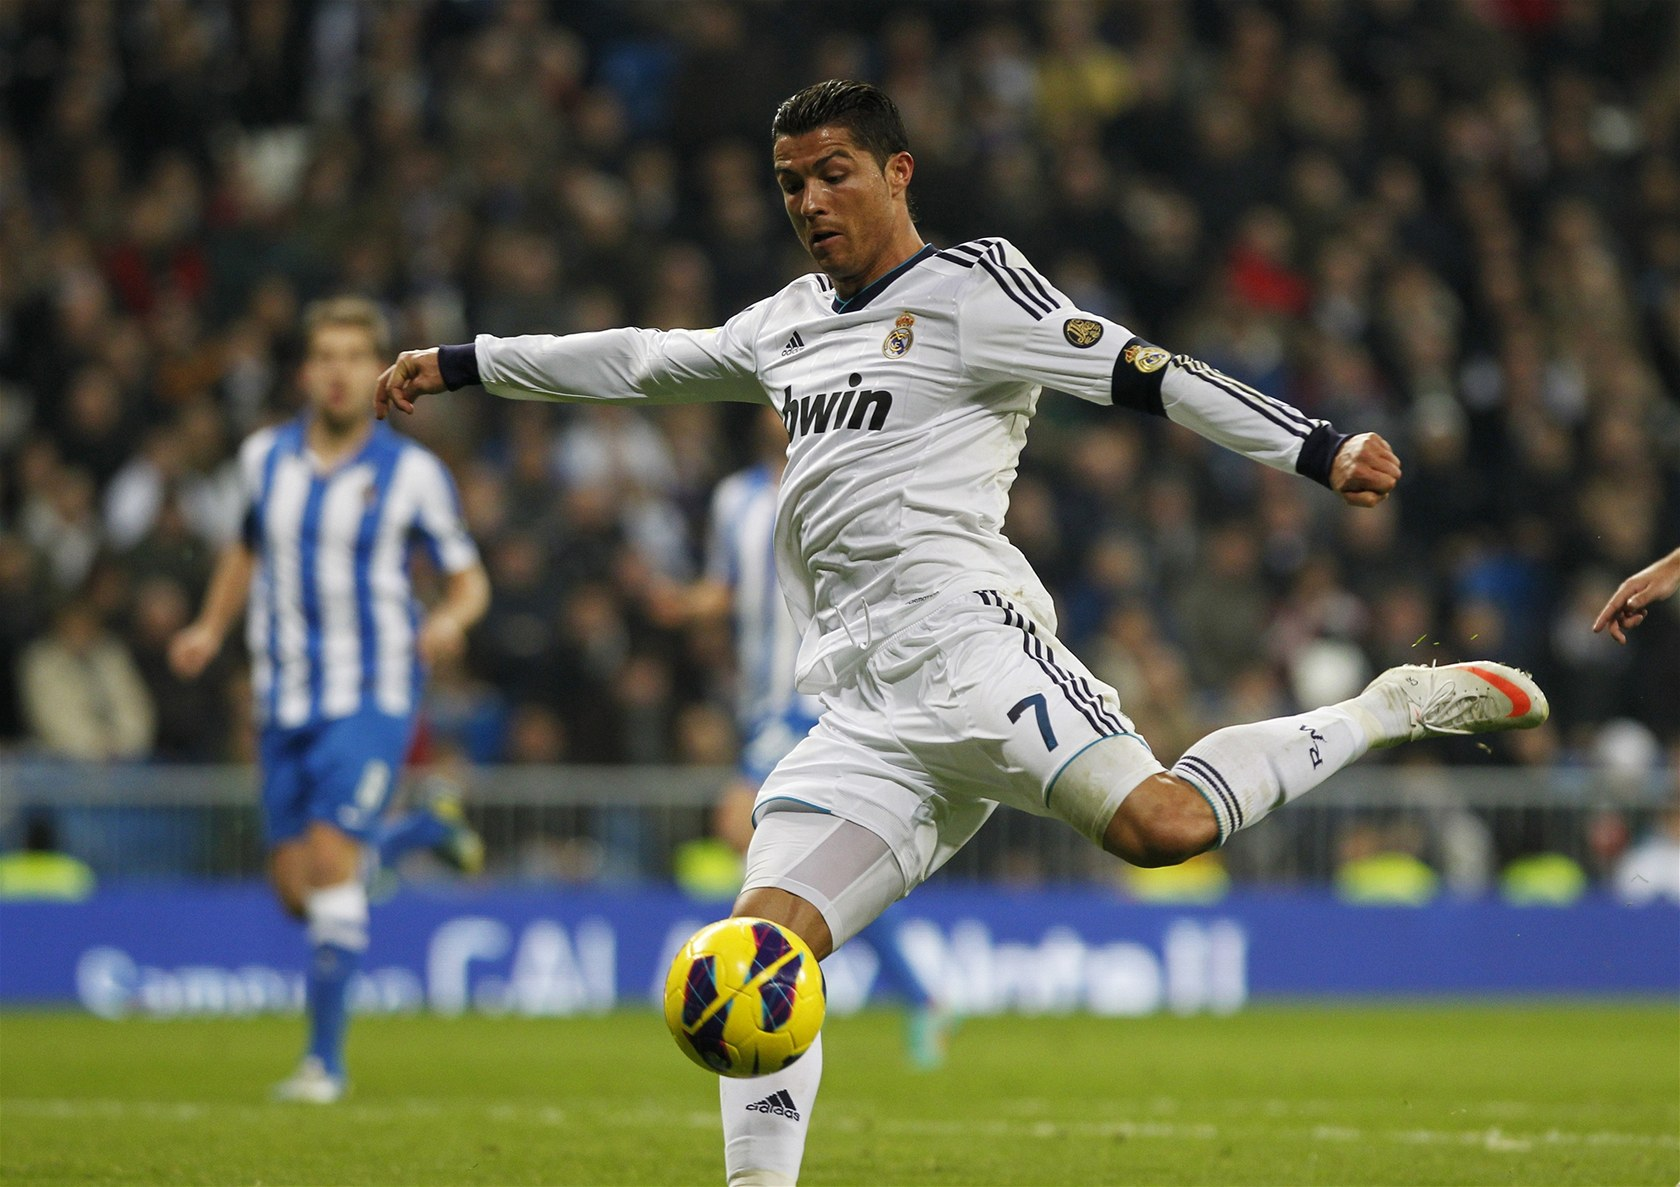 hd free cristiano ronaldo kick football mobile desktop download wallpapers img